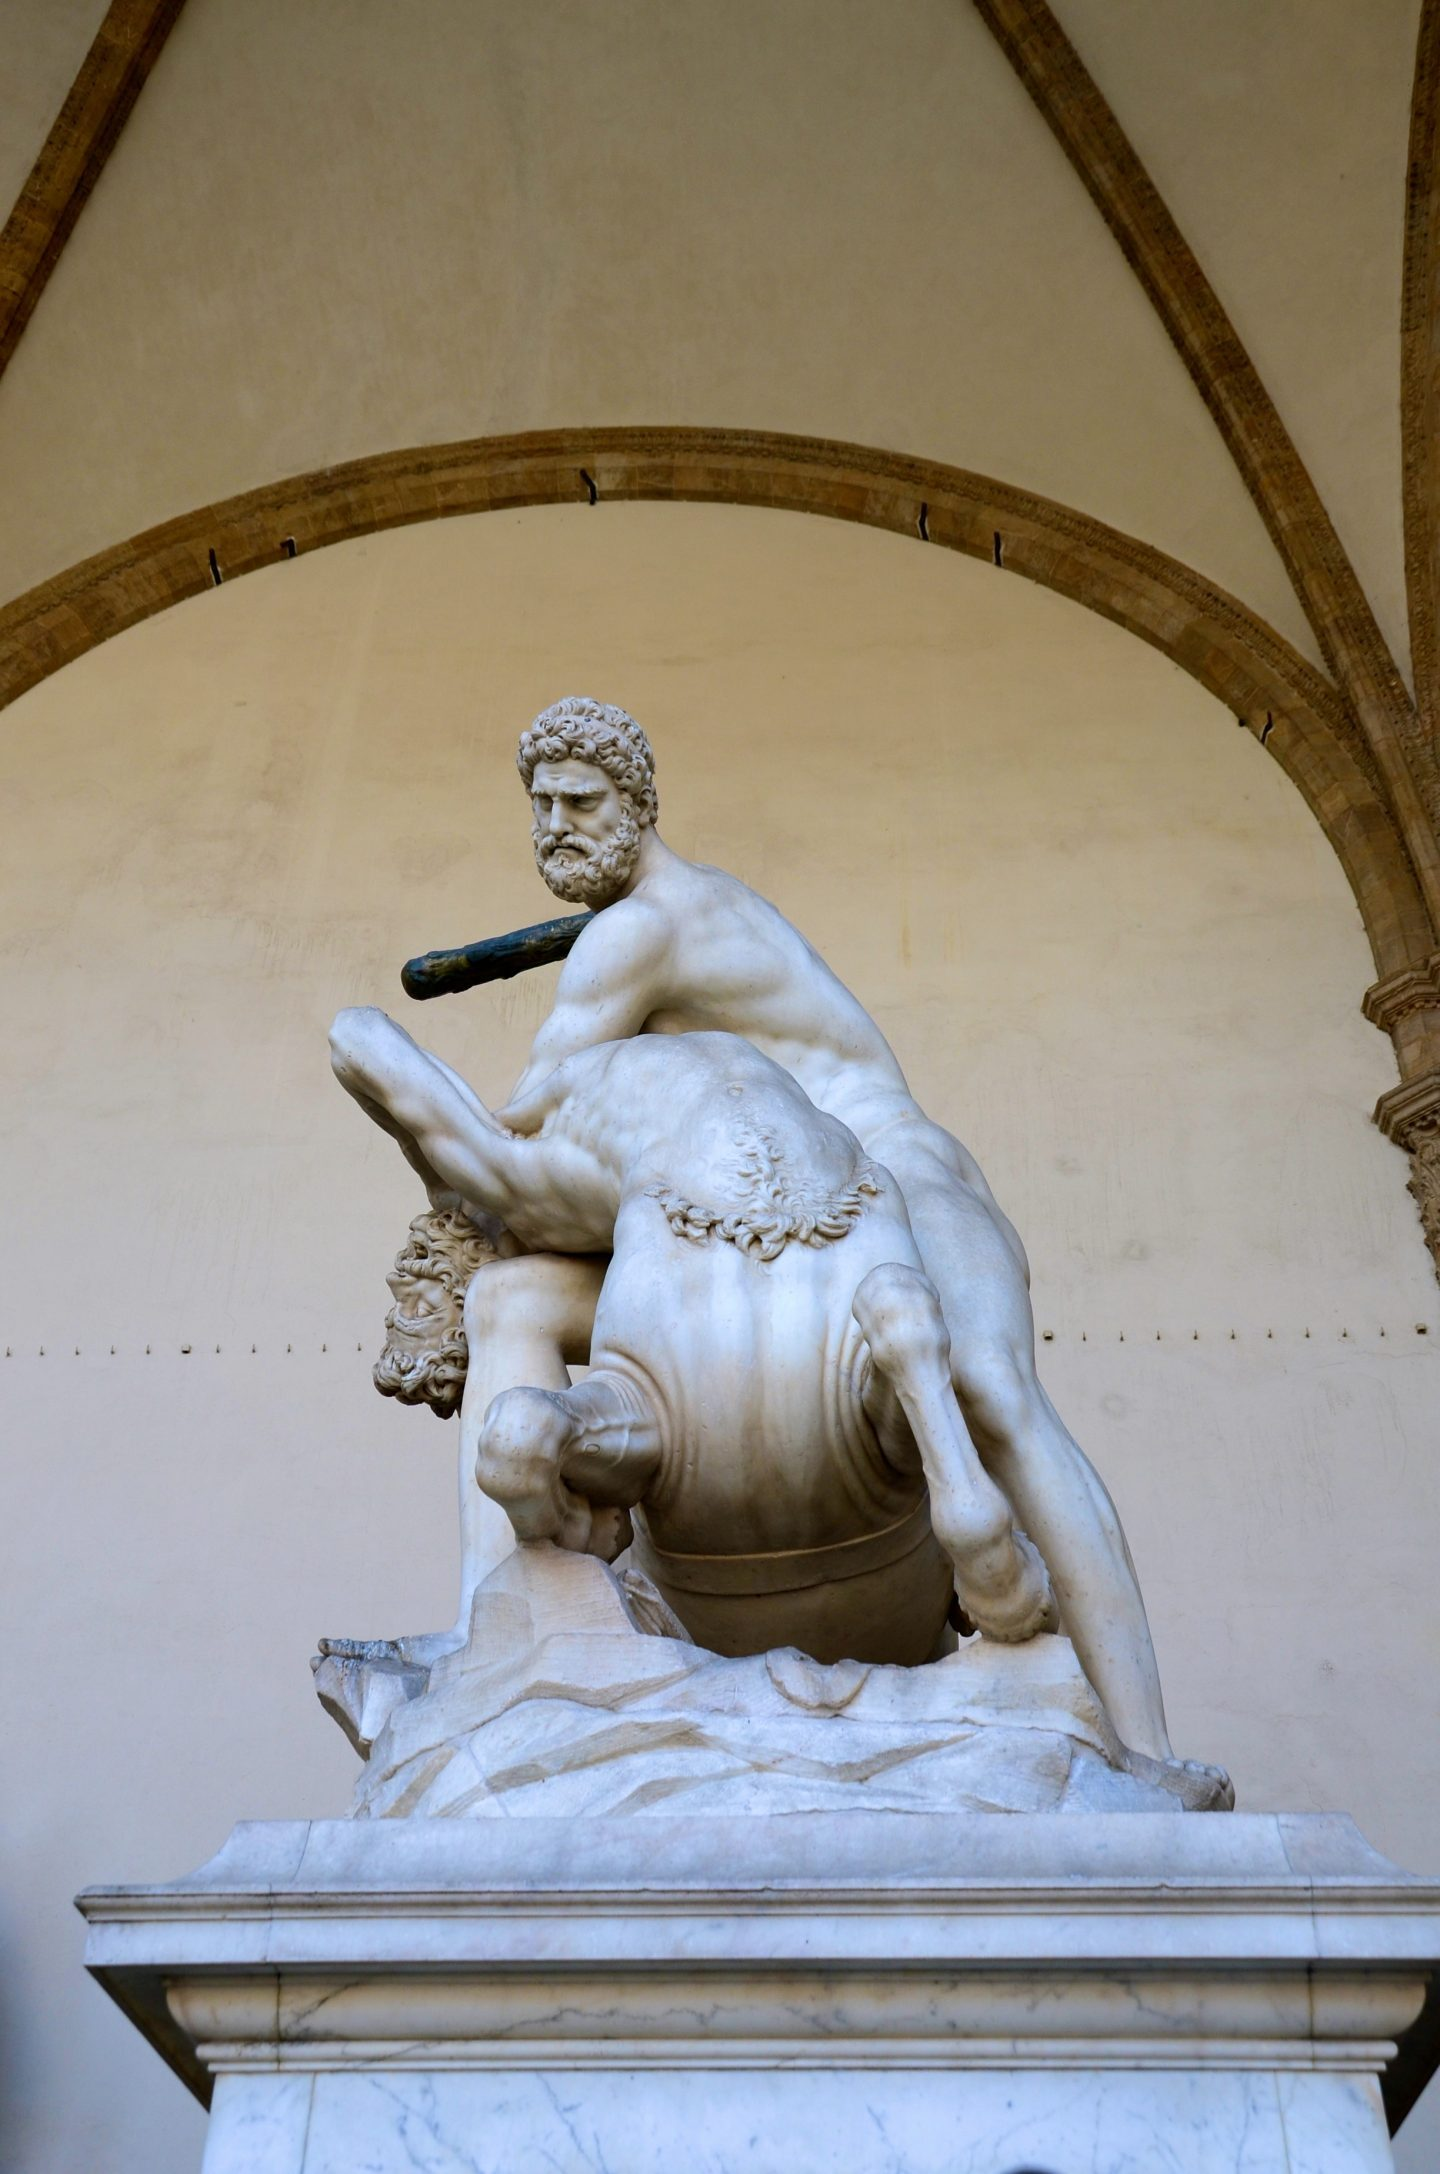 Taking a rest in front of the statue in piazza della signori a in Florence.